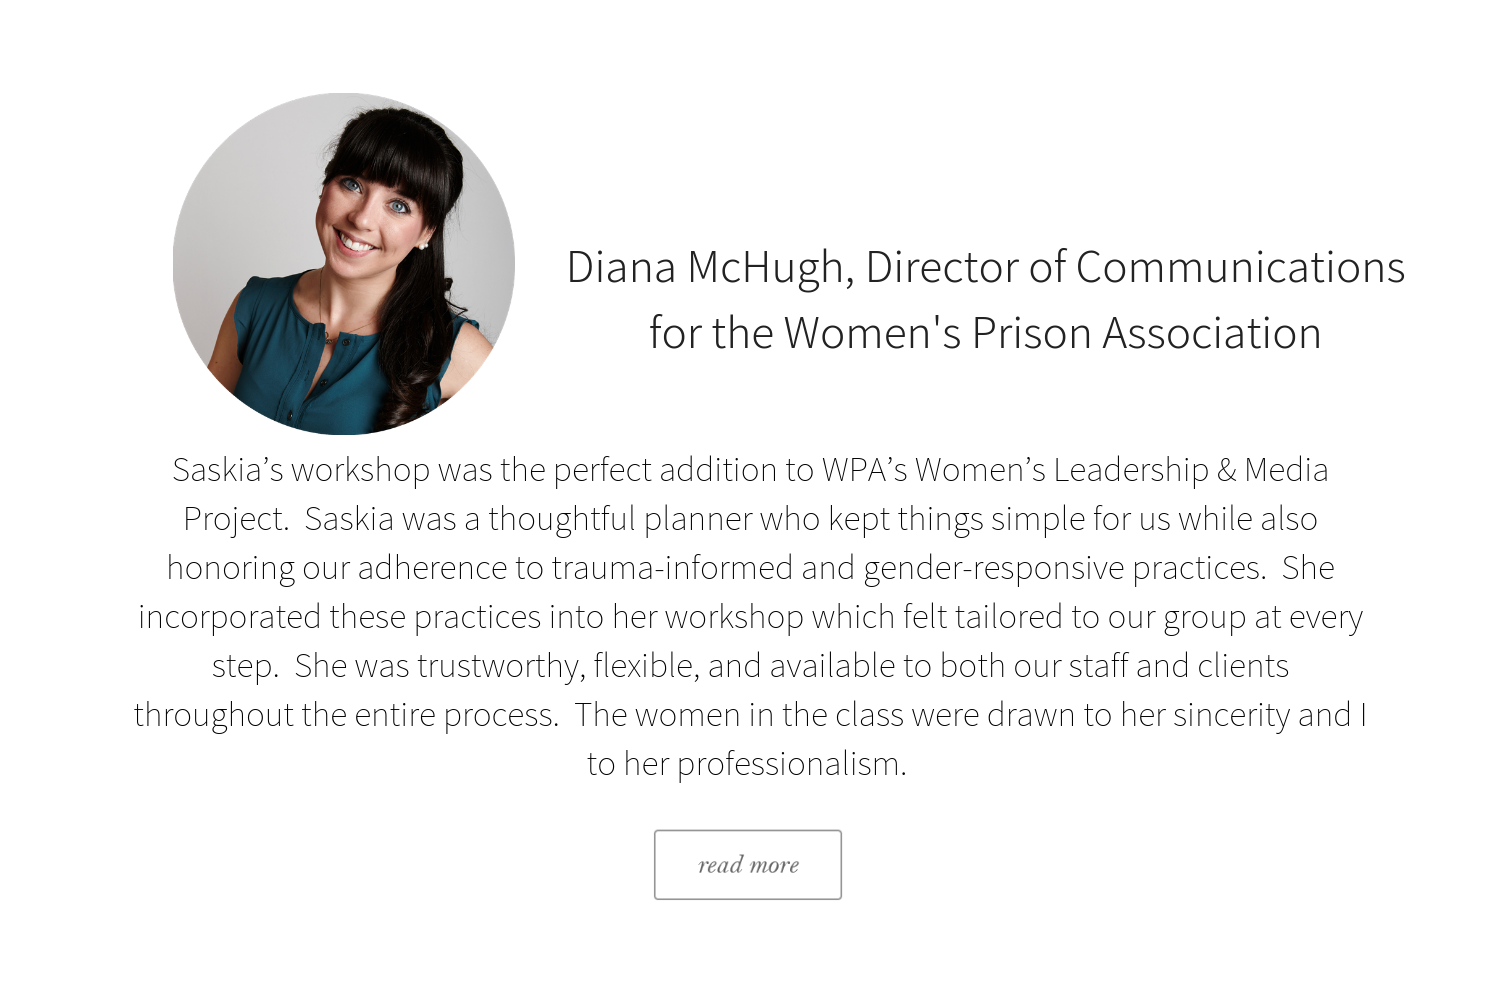 saskia-keeley-photography-humanitarian-photojournalism-documentarian-womens-prison-association-diana-mchugh-testimonial.png